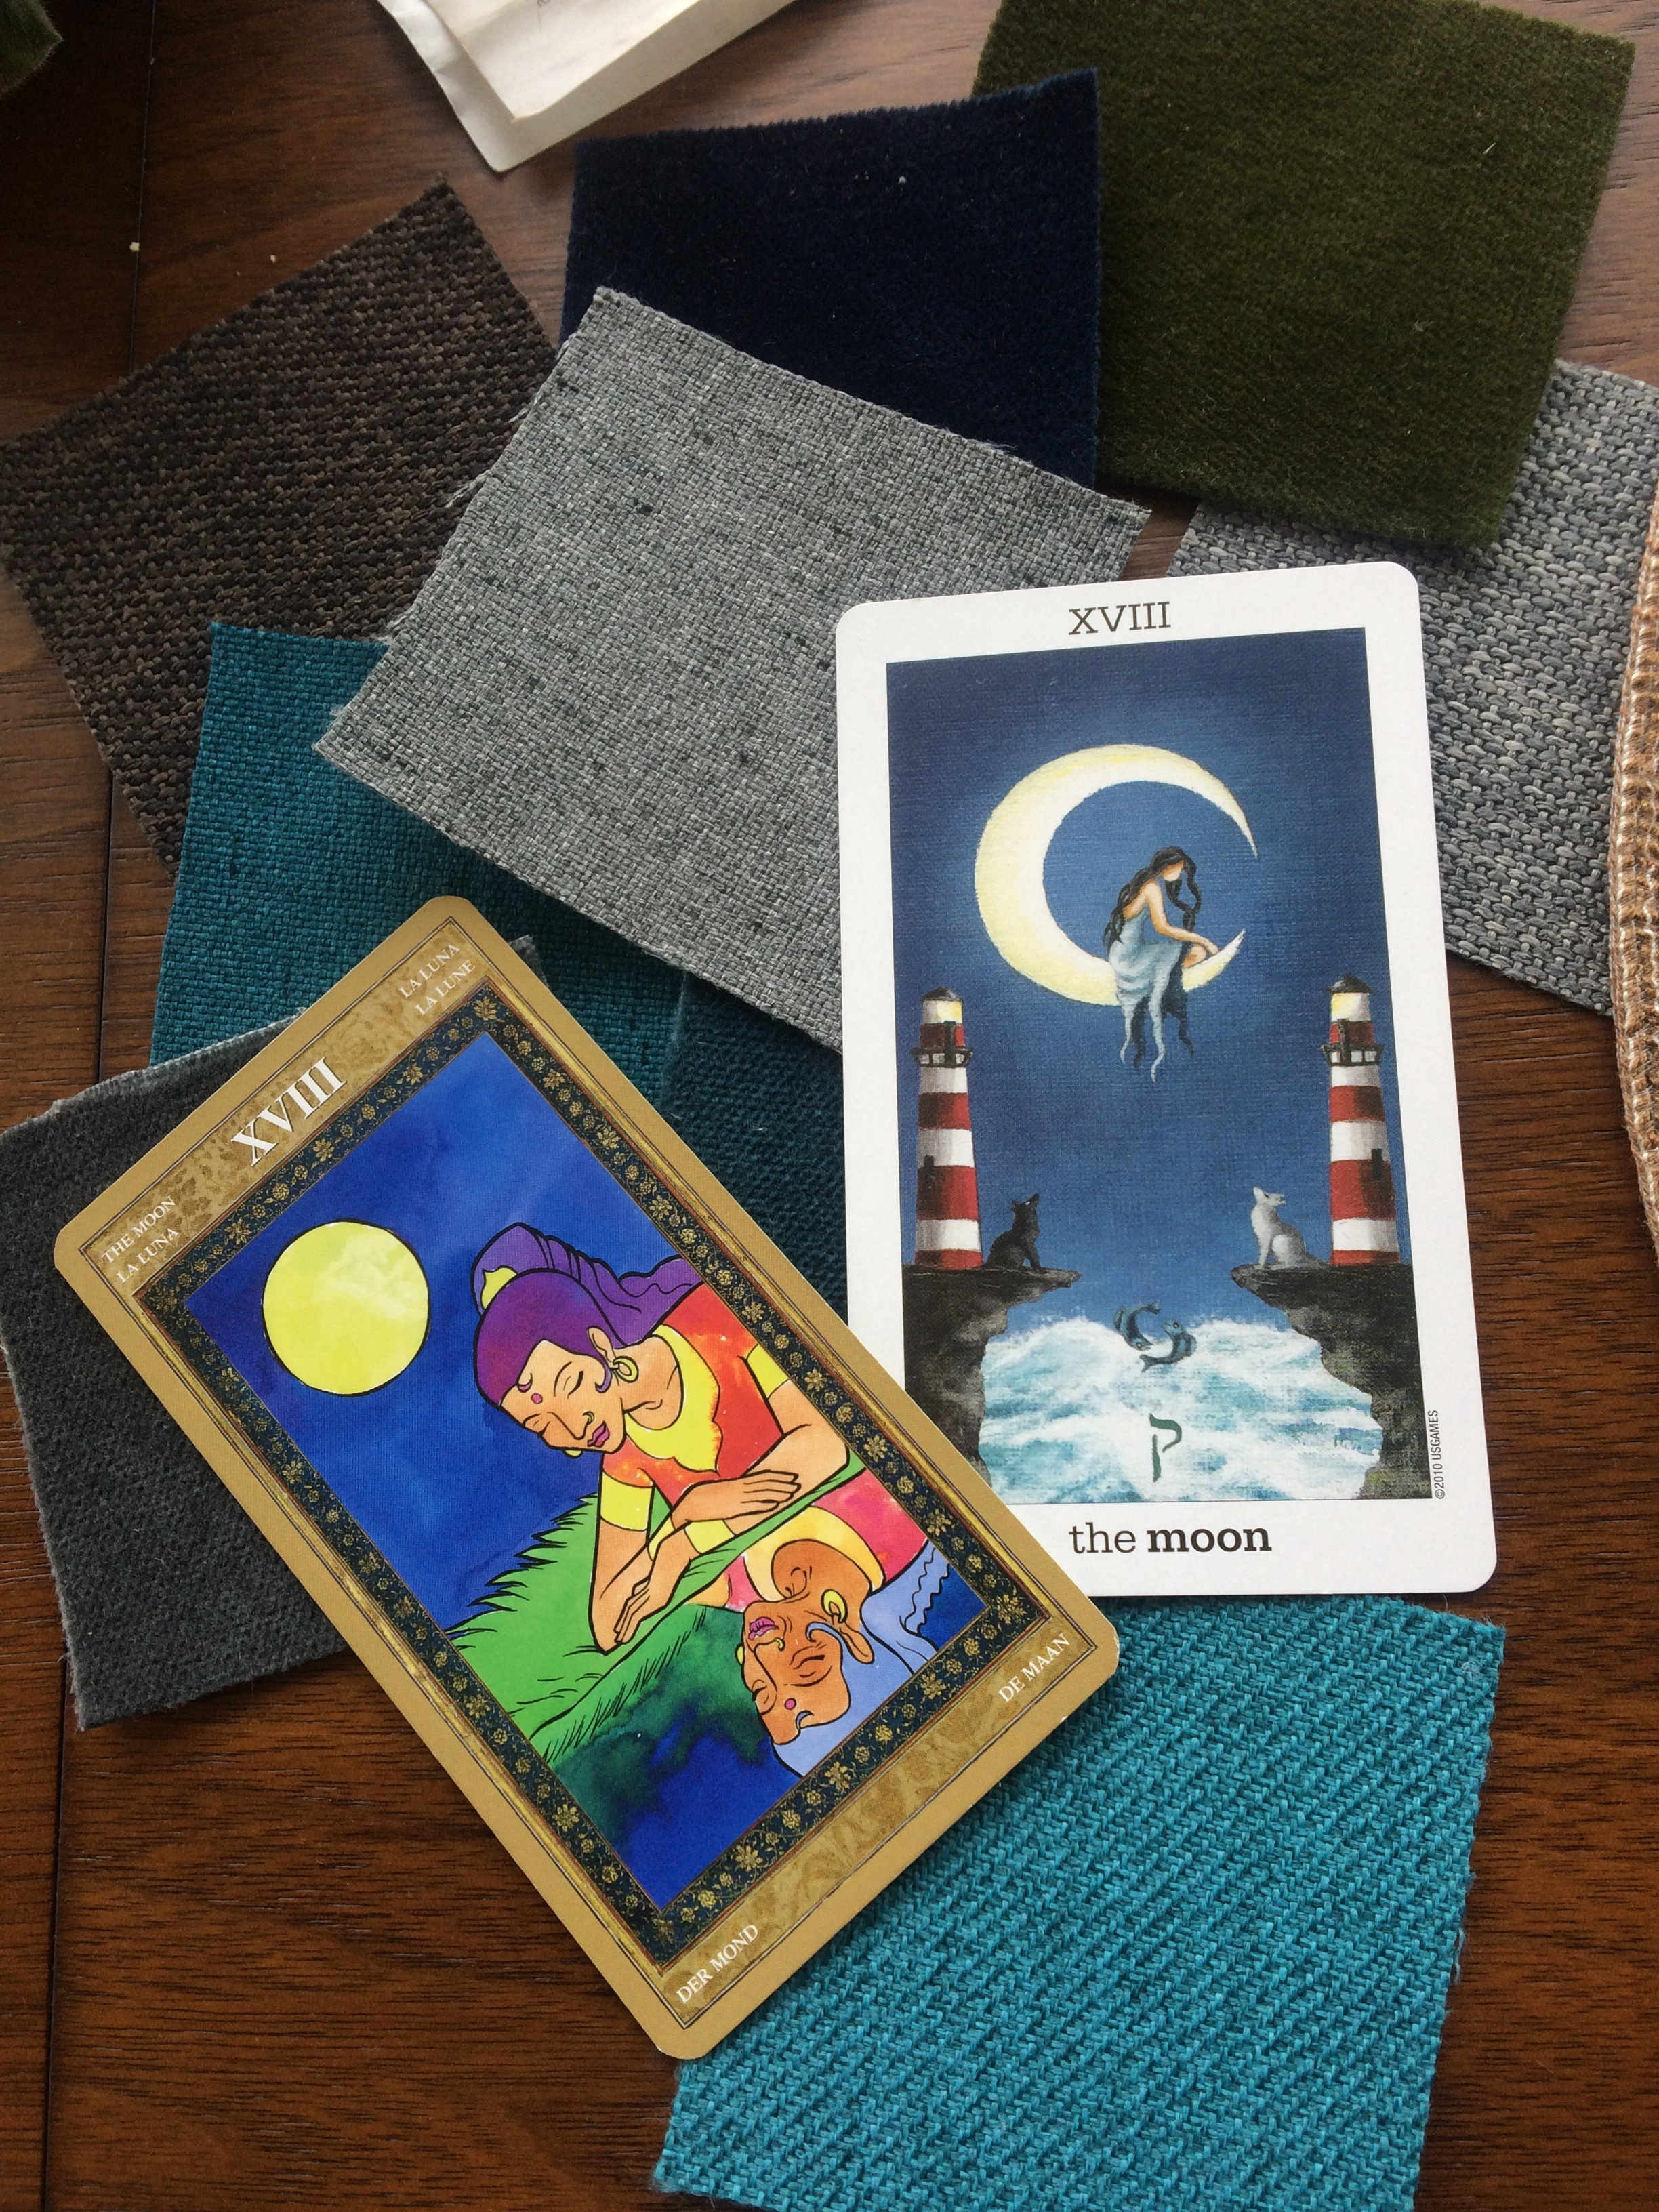 A few of my favorite images of the moon, according to the Tarot.